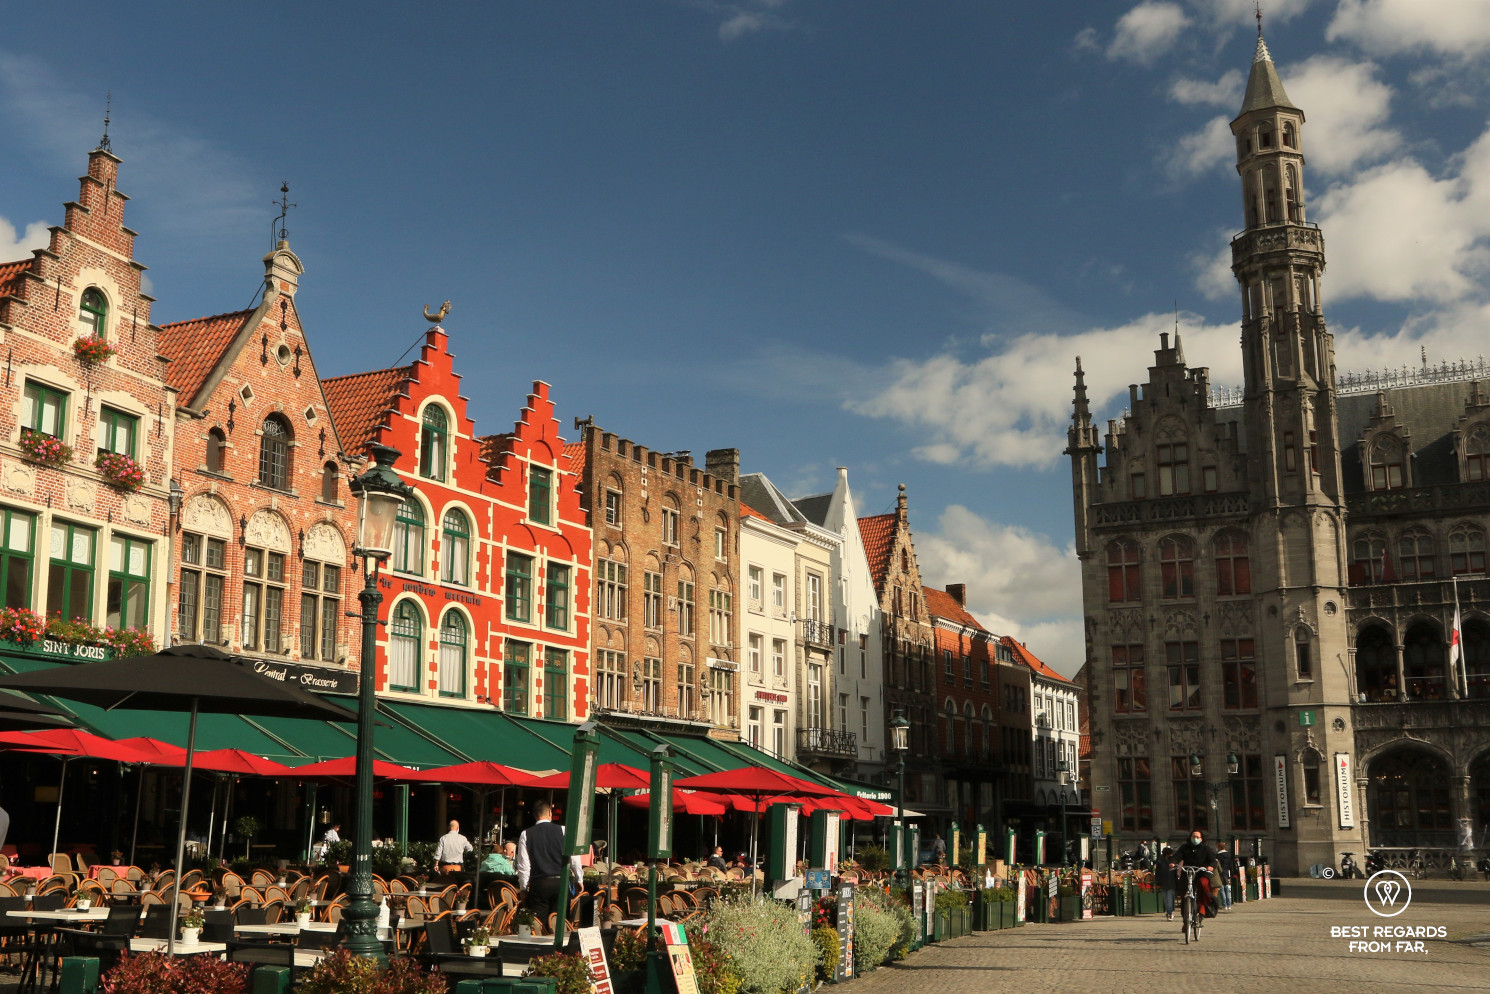 The Market Square of Bruges, Belgium, with its typical medieval architecture.